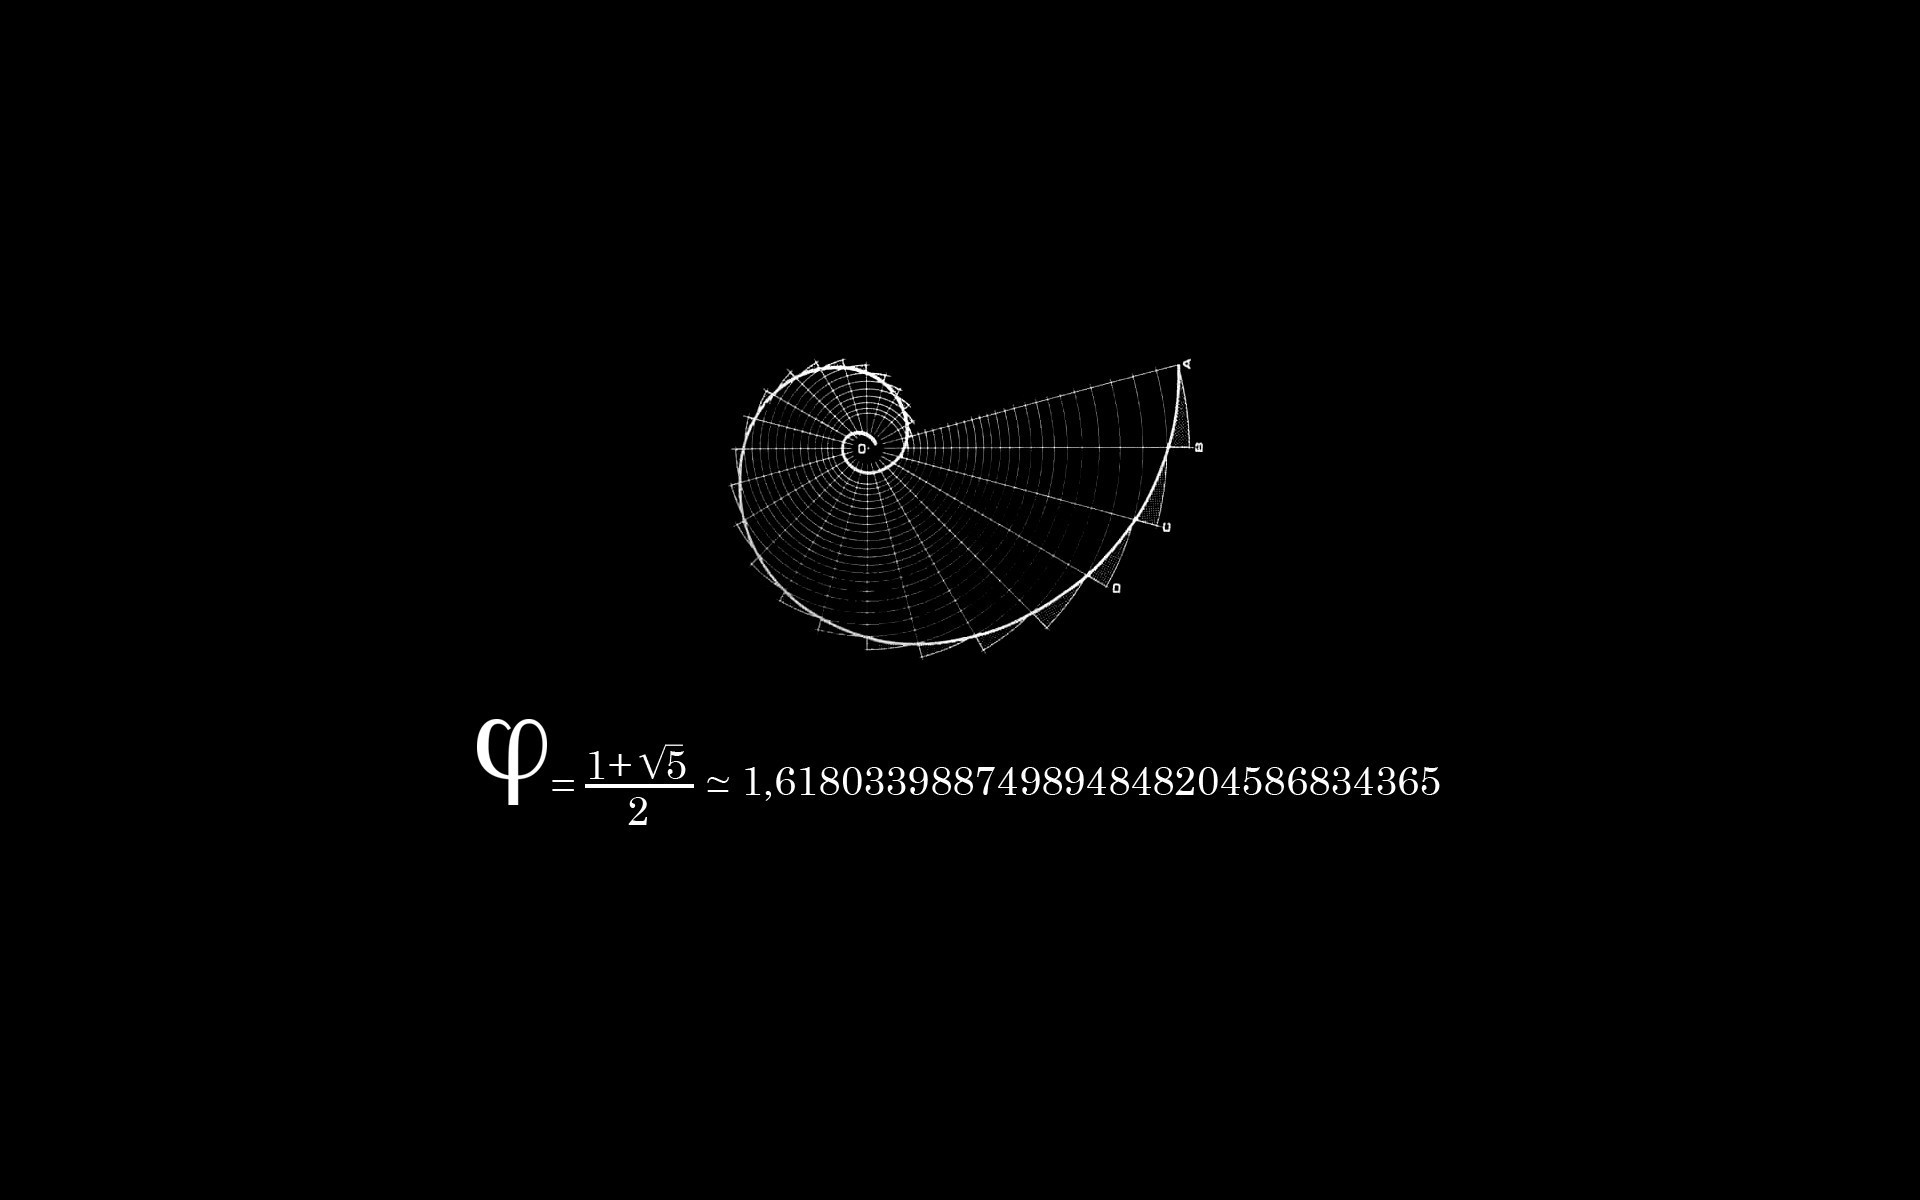 Fibonacci Black Background Mathematics Physics Wallpaper